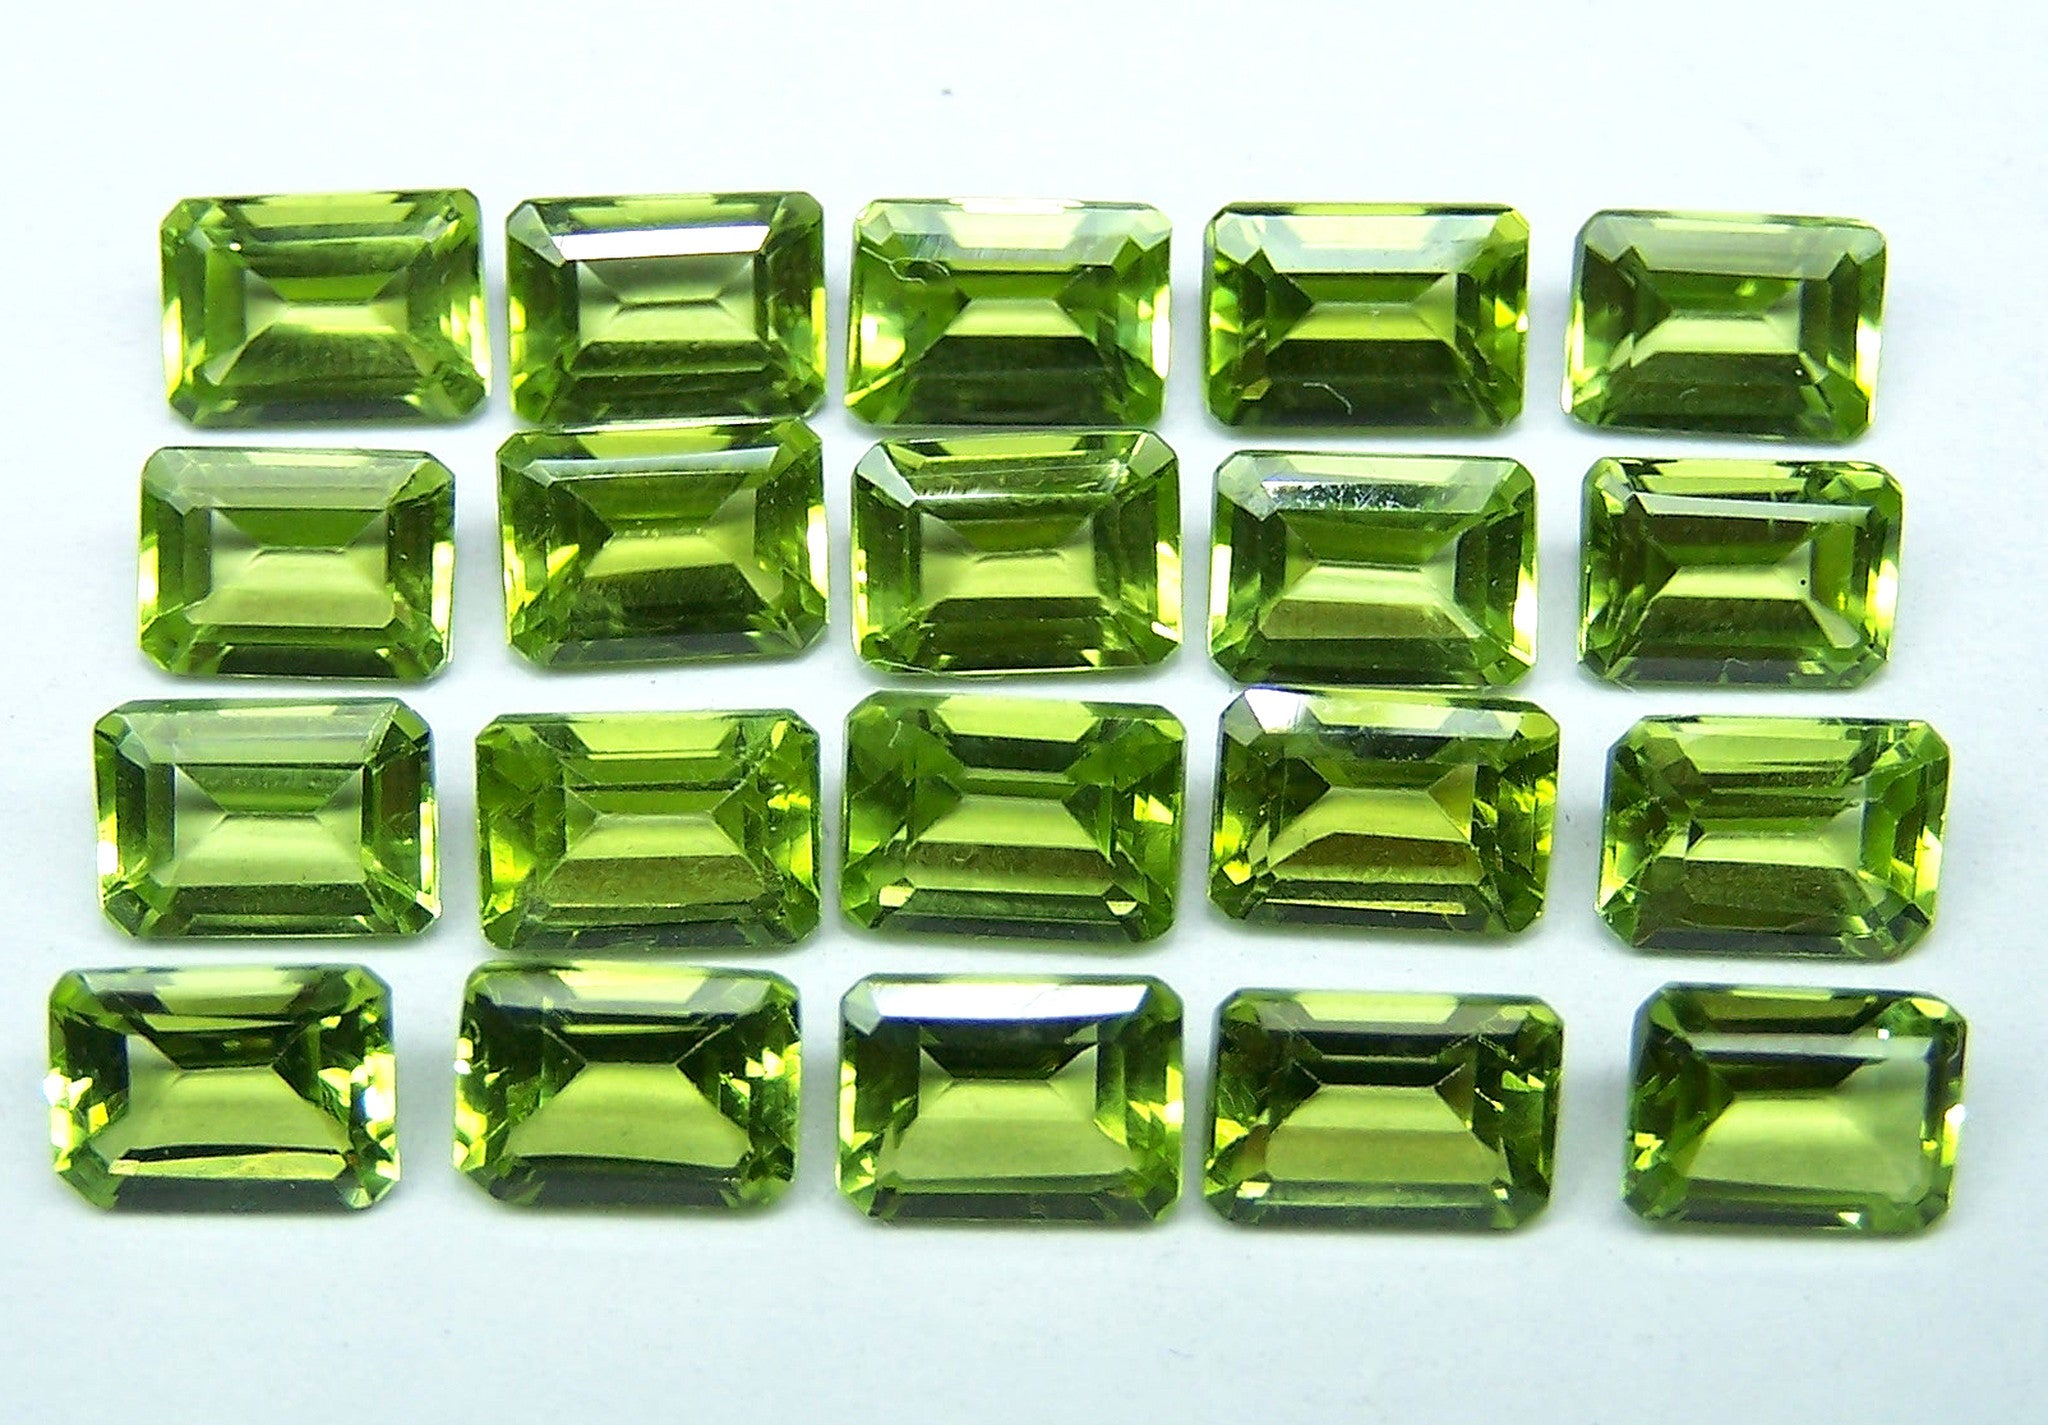 are compared investment emeralds other good wholesale emerald gems grade to a gemstones in tanzanite